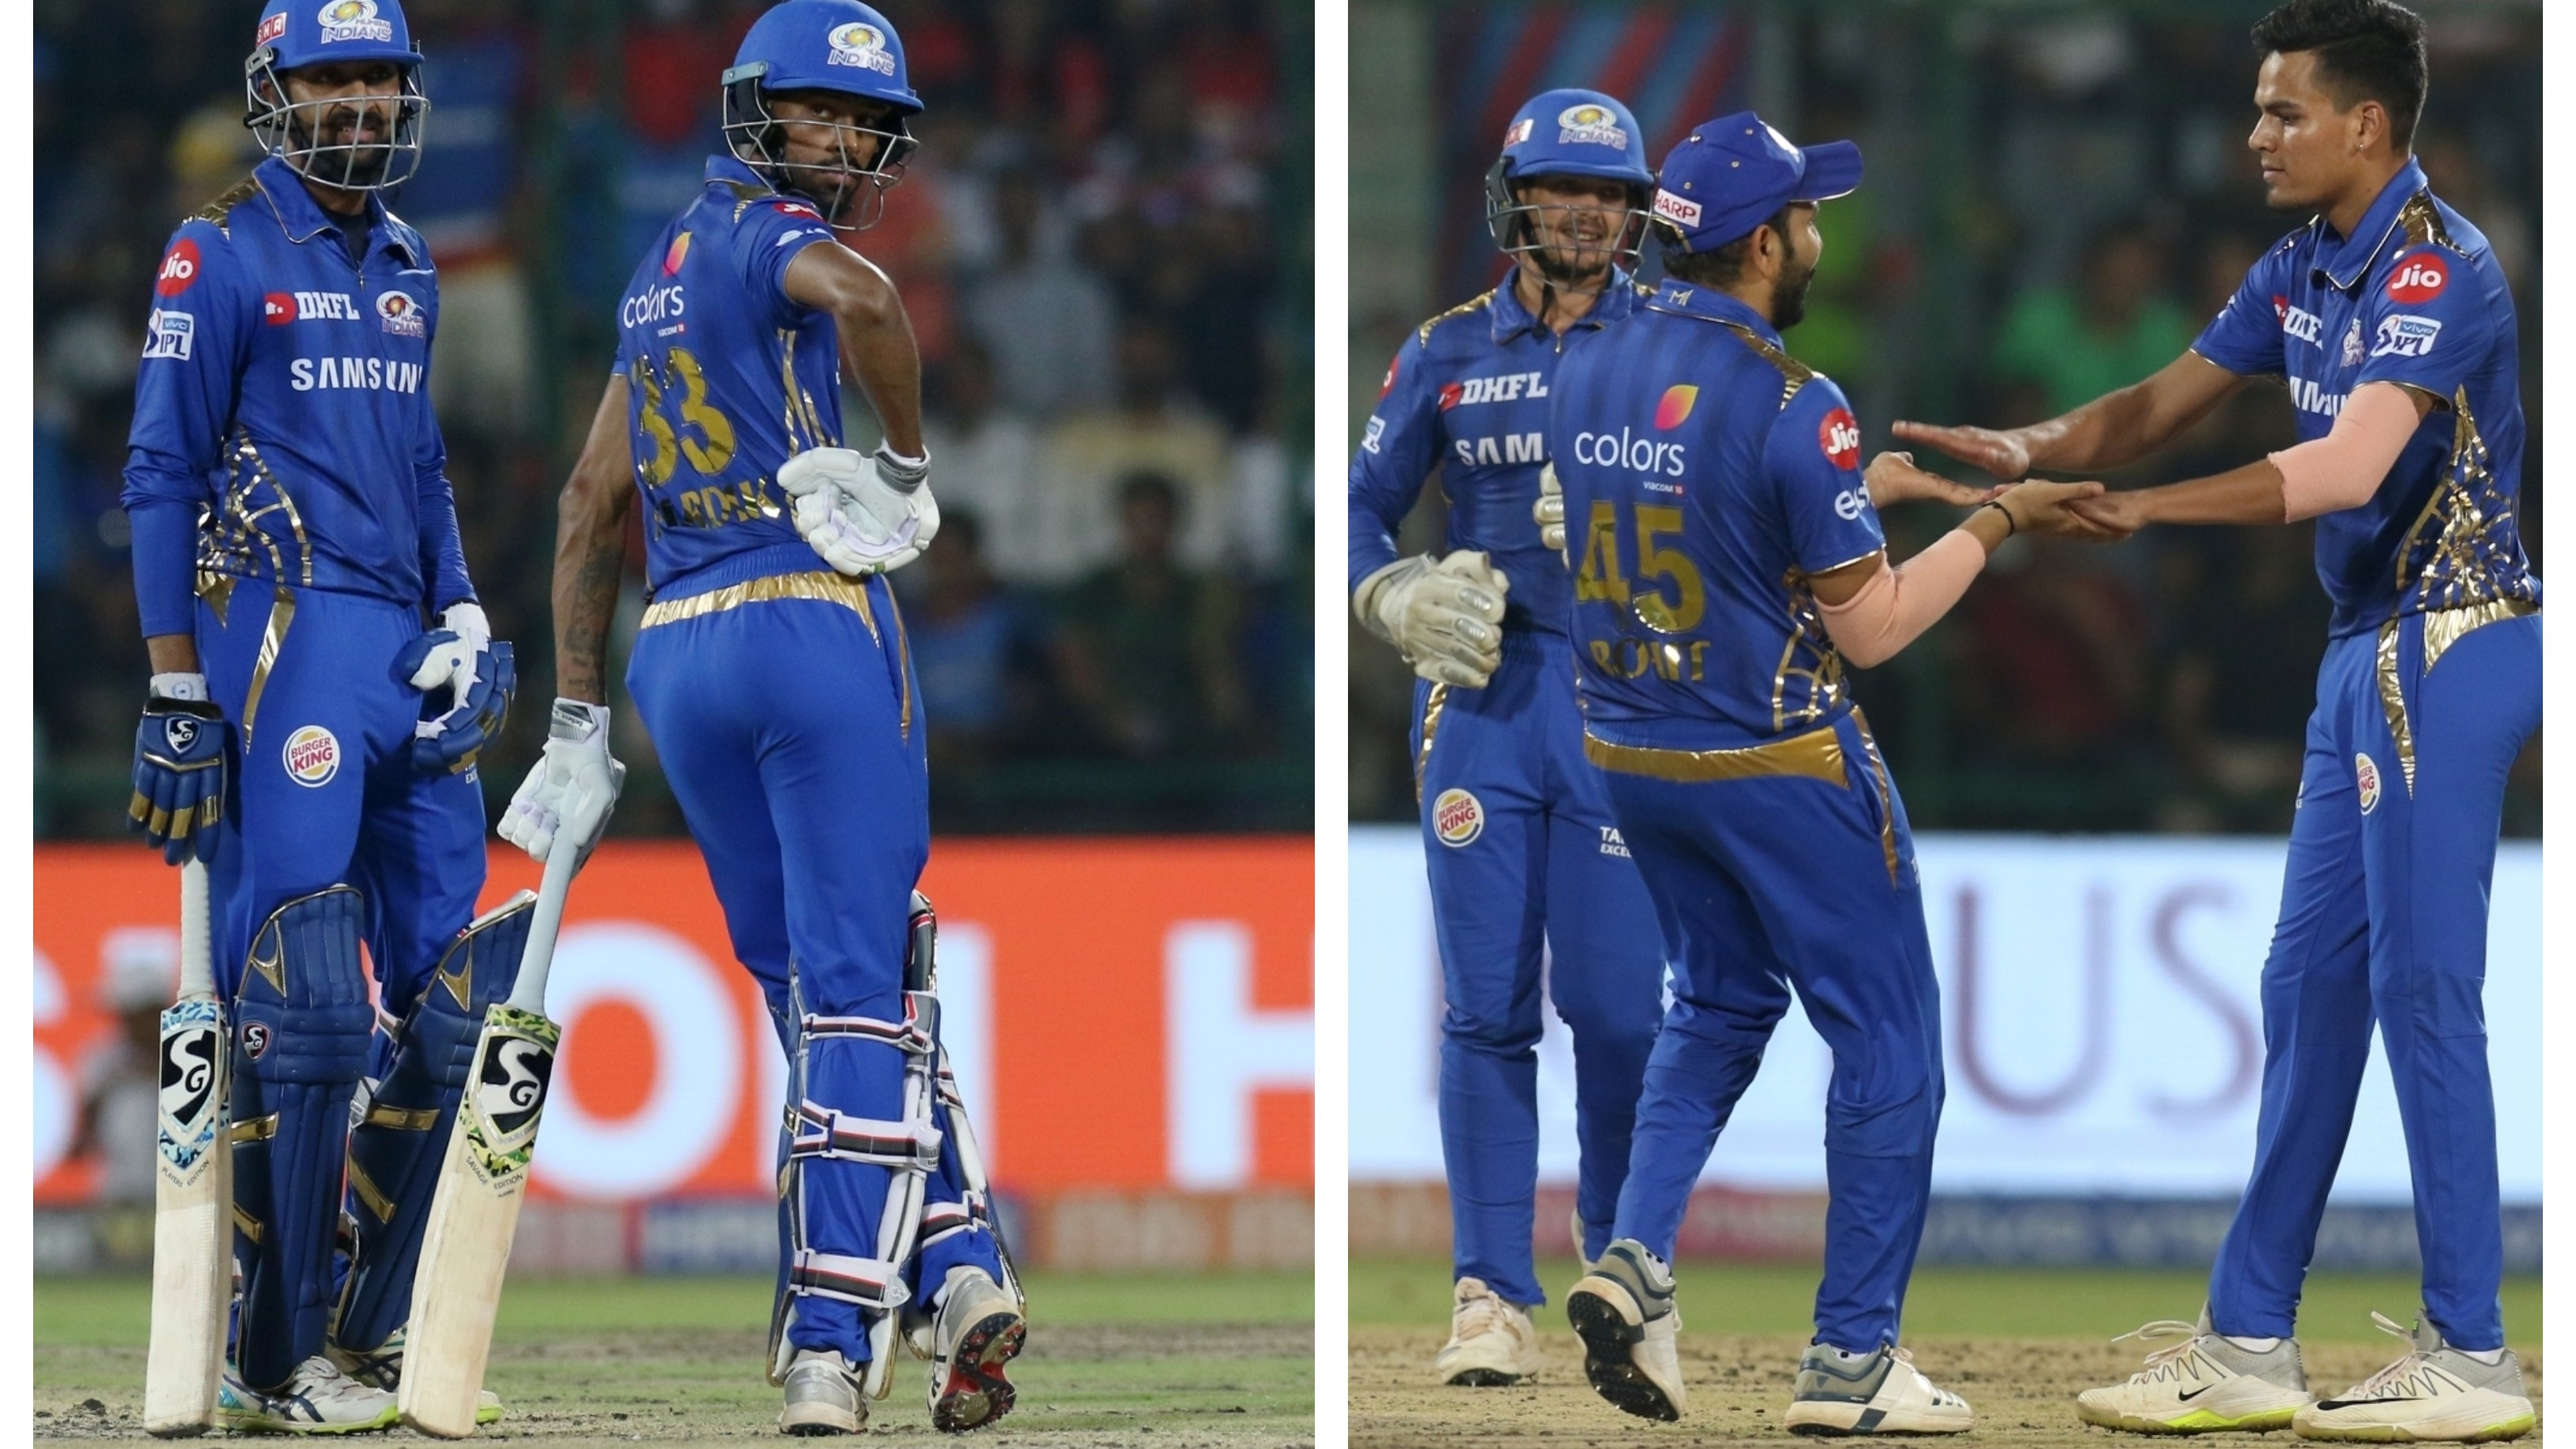 IPL 2019: Rahul Chahar joins forces with Pandya brothers to hand MI 40-run victory over DC